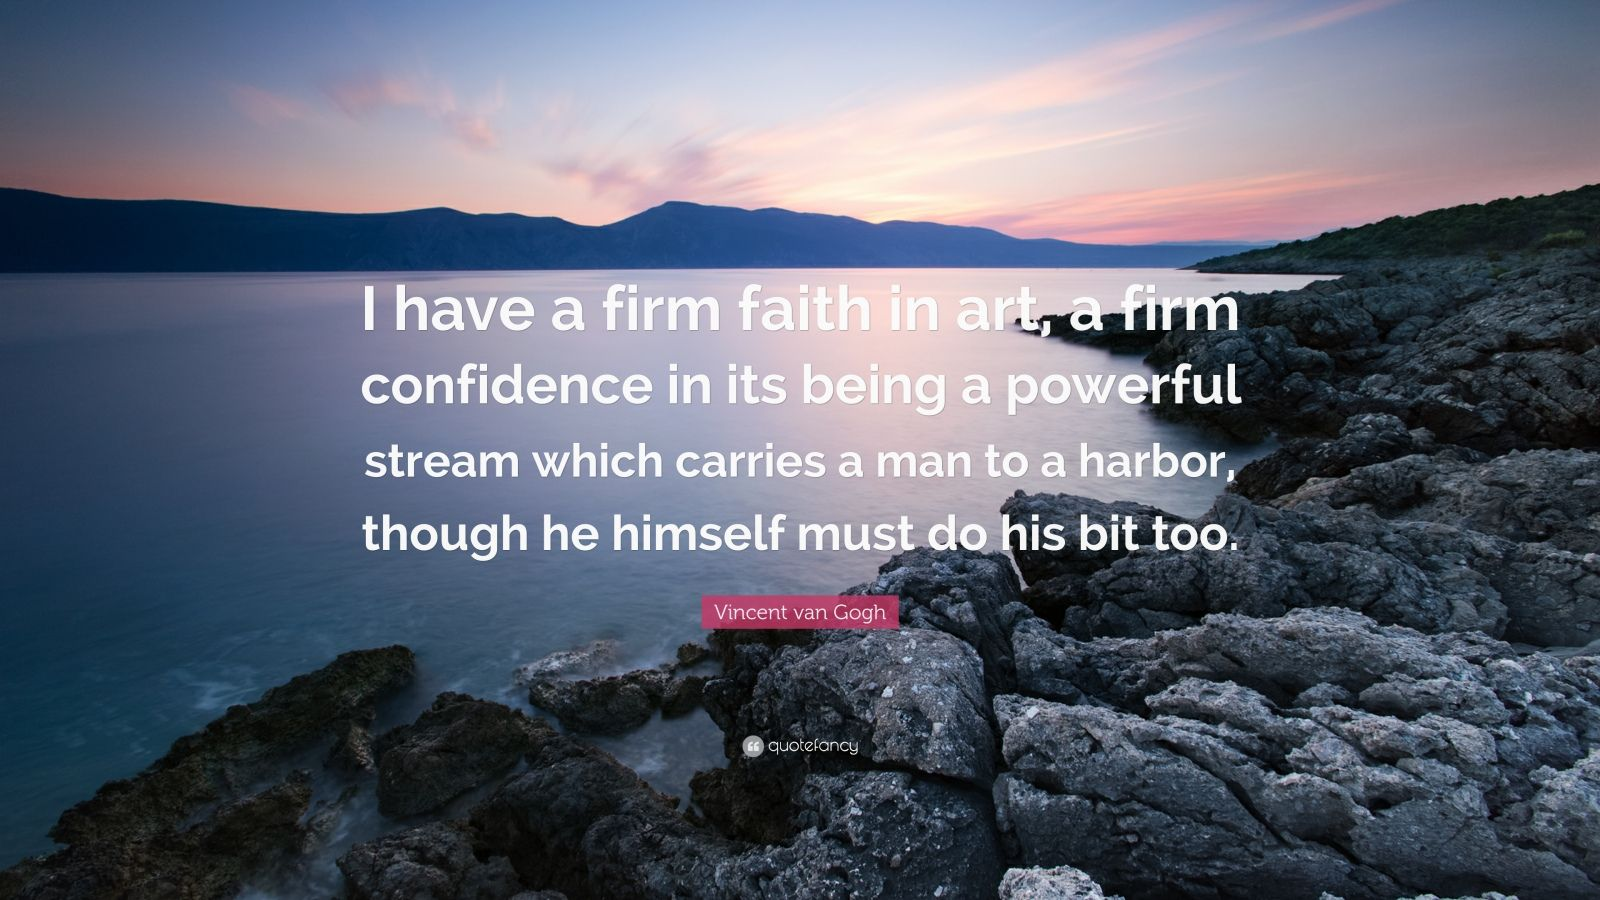 """Vincent van Gogh Quote: """"I have a firm faith in art, a firm confidence in its being a powerful stream which carries a man to a harbor, though he himself must do his bit too."""""""